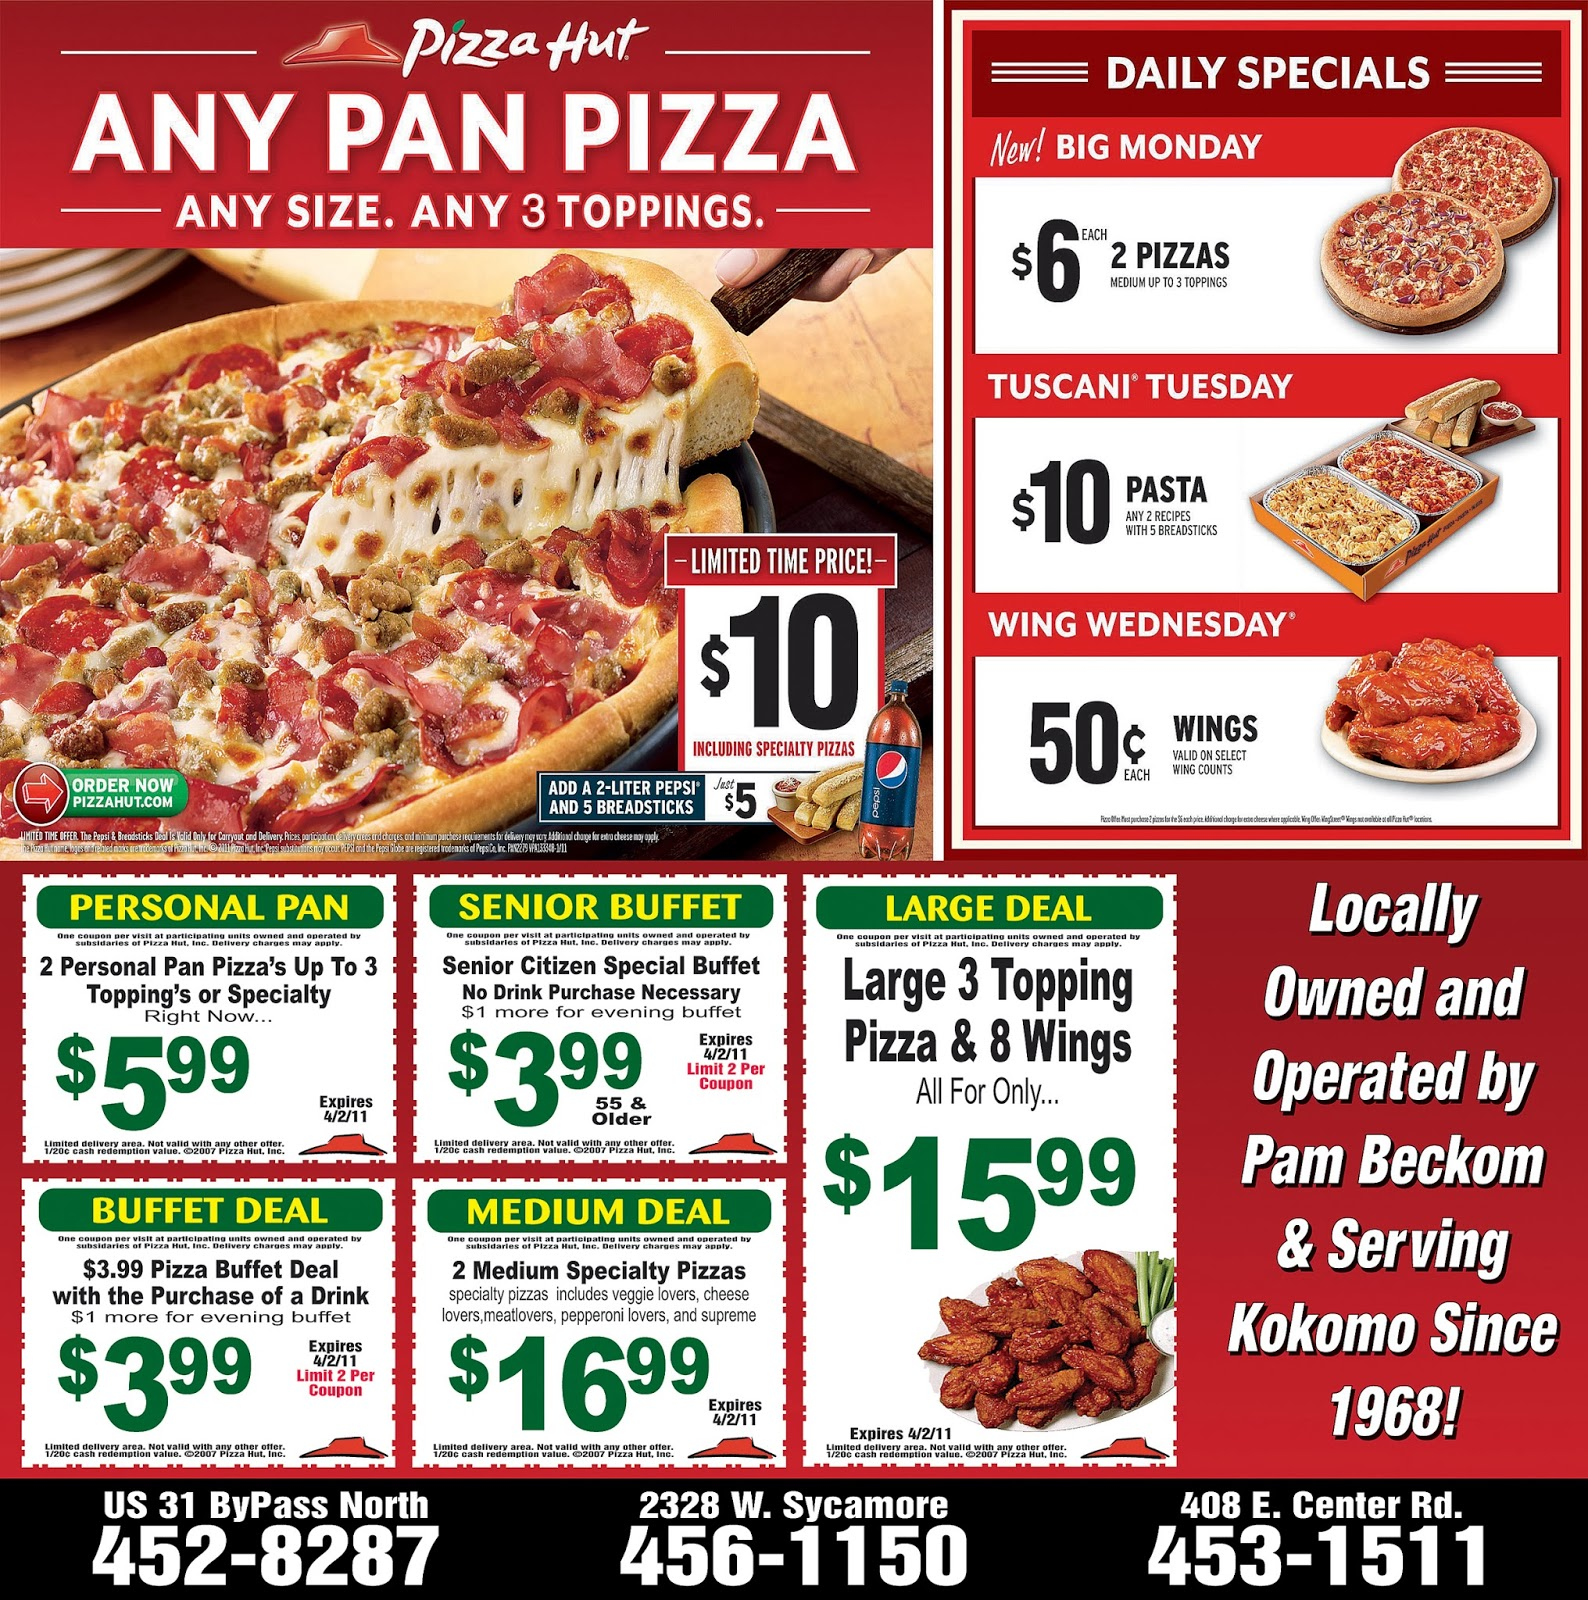 Print out coupons for Pizza Hut. BeFrugal updates printable coupons for Pizza Hut every day. Print the coupons below and take to a participating Pizza Hut to save.